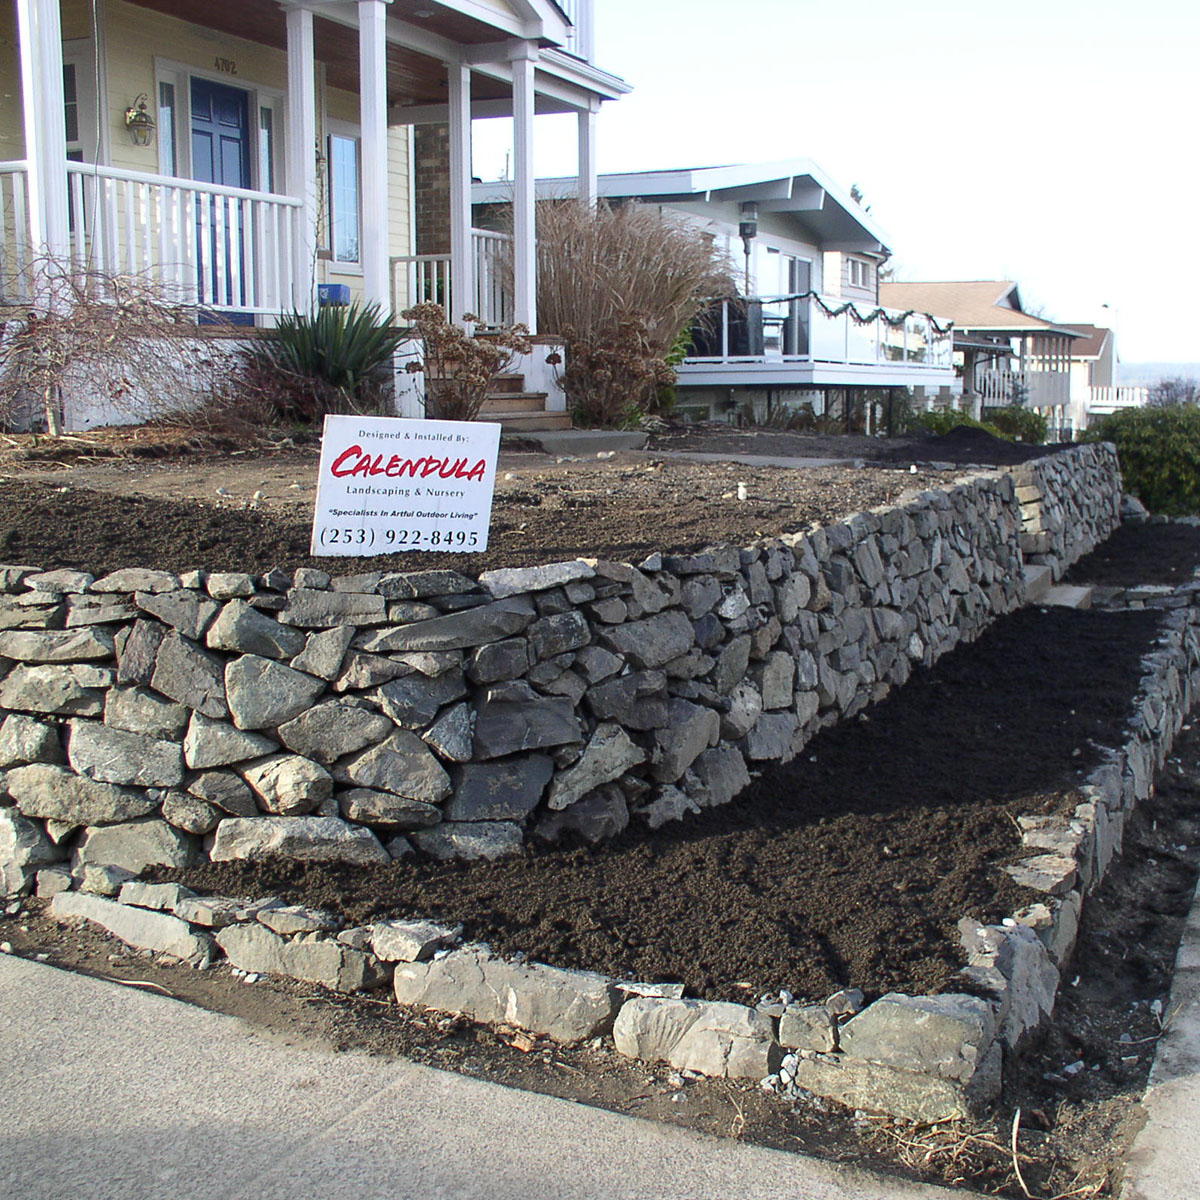 Two tiered stone retaining wall in front yard landscaping